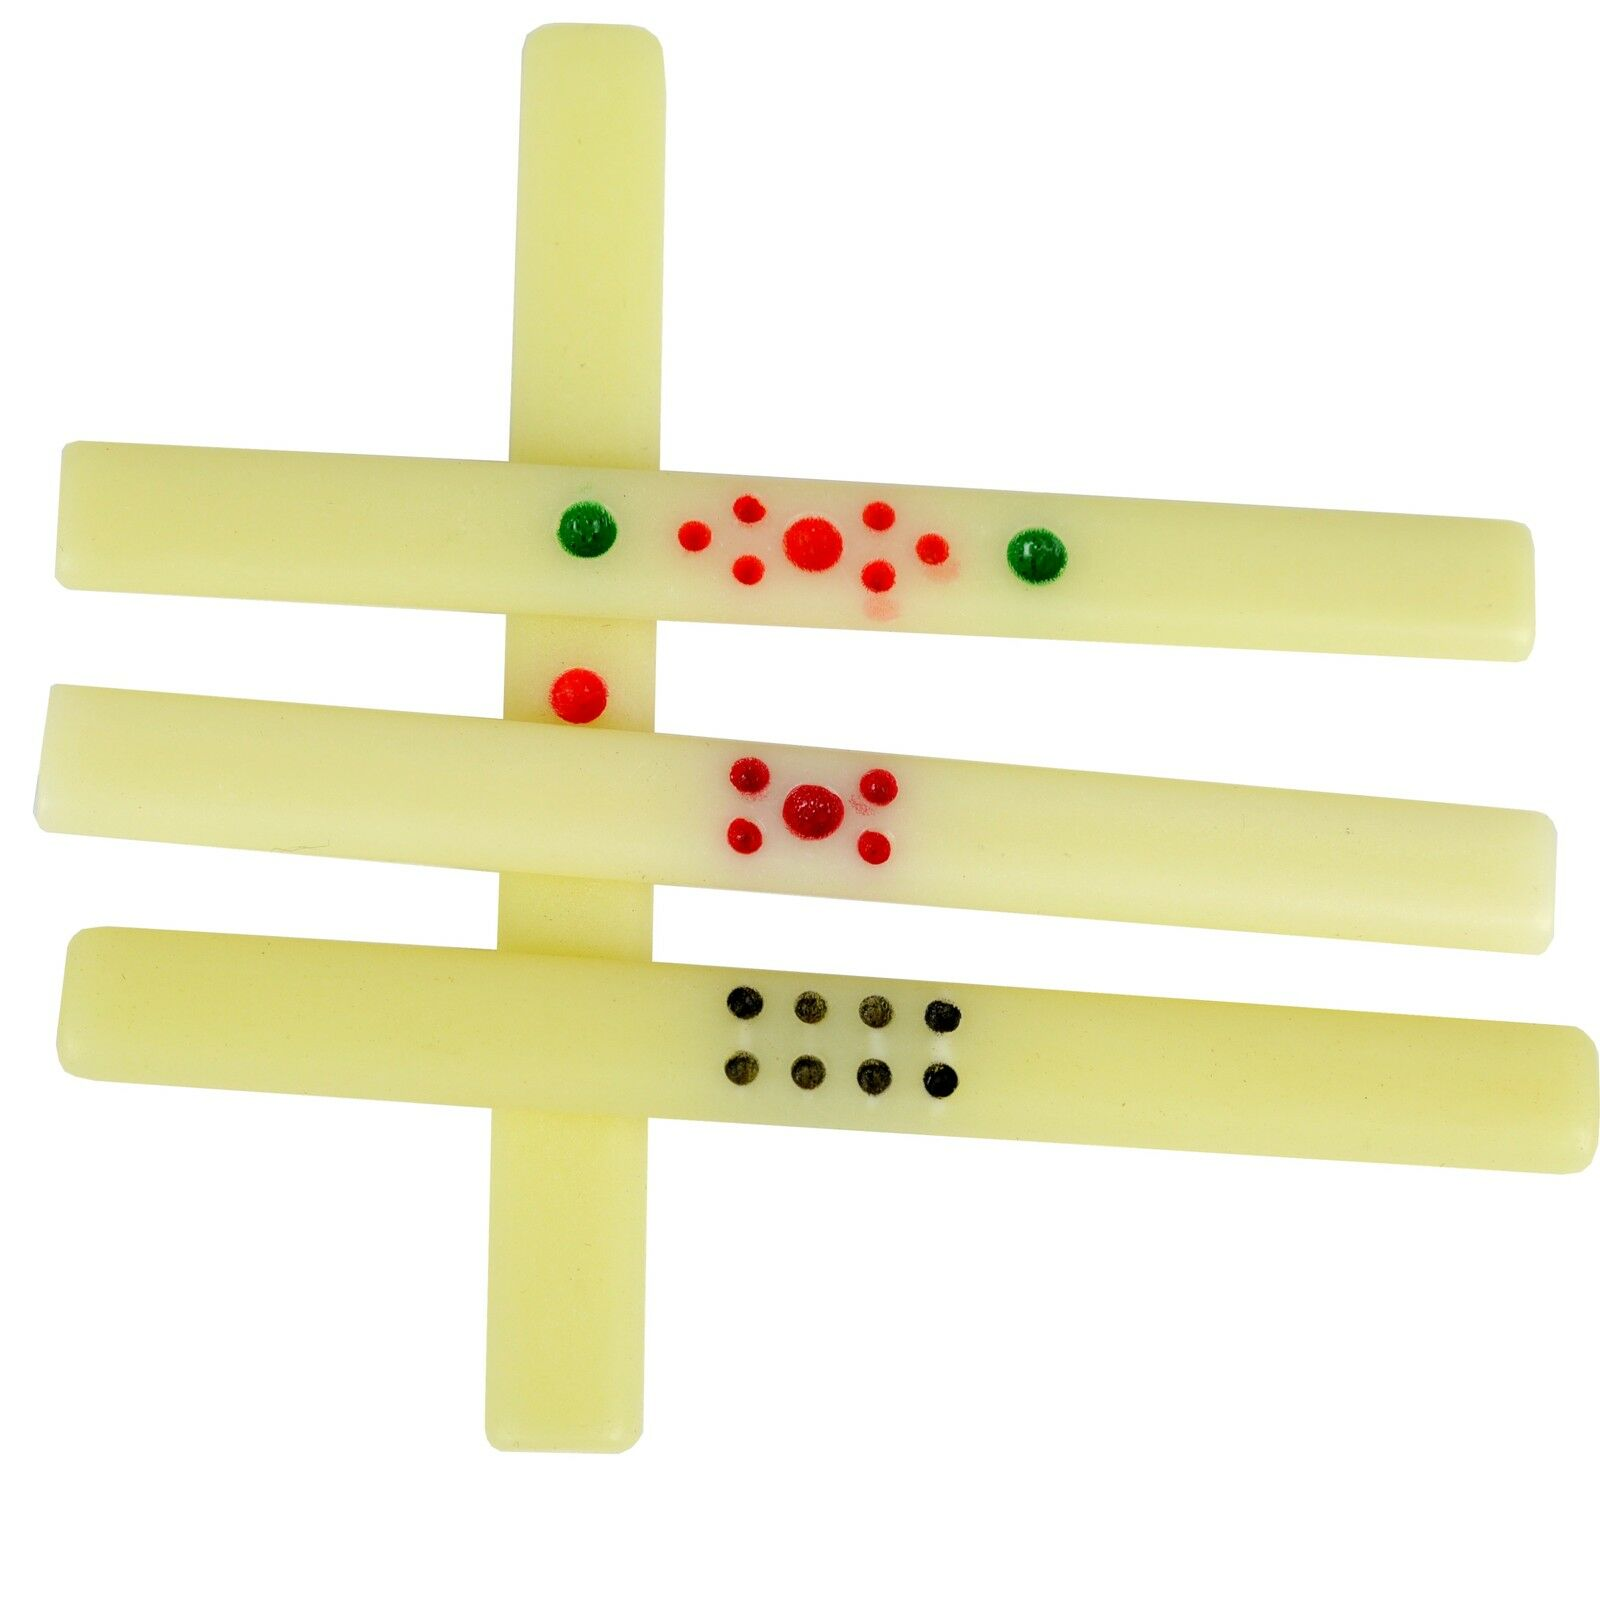 how to make points in mahjong